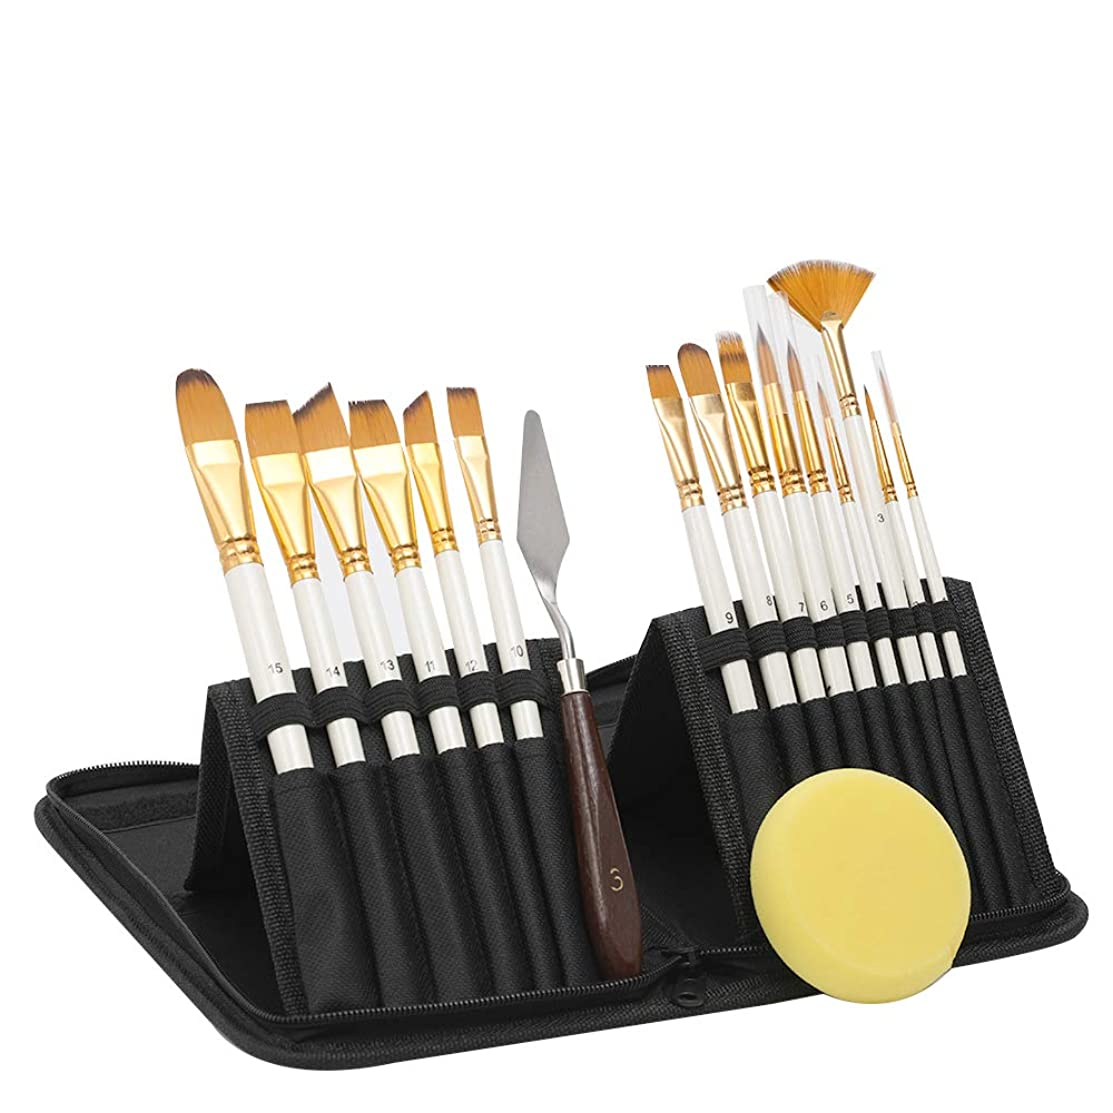 Acrylic Paint Brush Set –15 PC Art Paint Brushes – Free Painting Knife & Watercolor Sponge and Pop-up Carrying Case for Acrylic, Oil, Watercolor and Gouache Painting